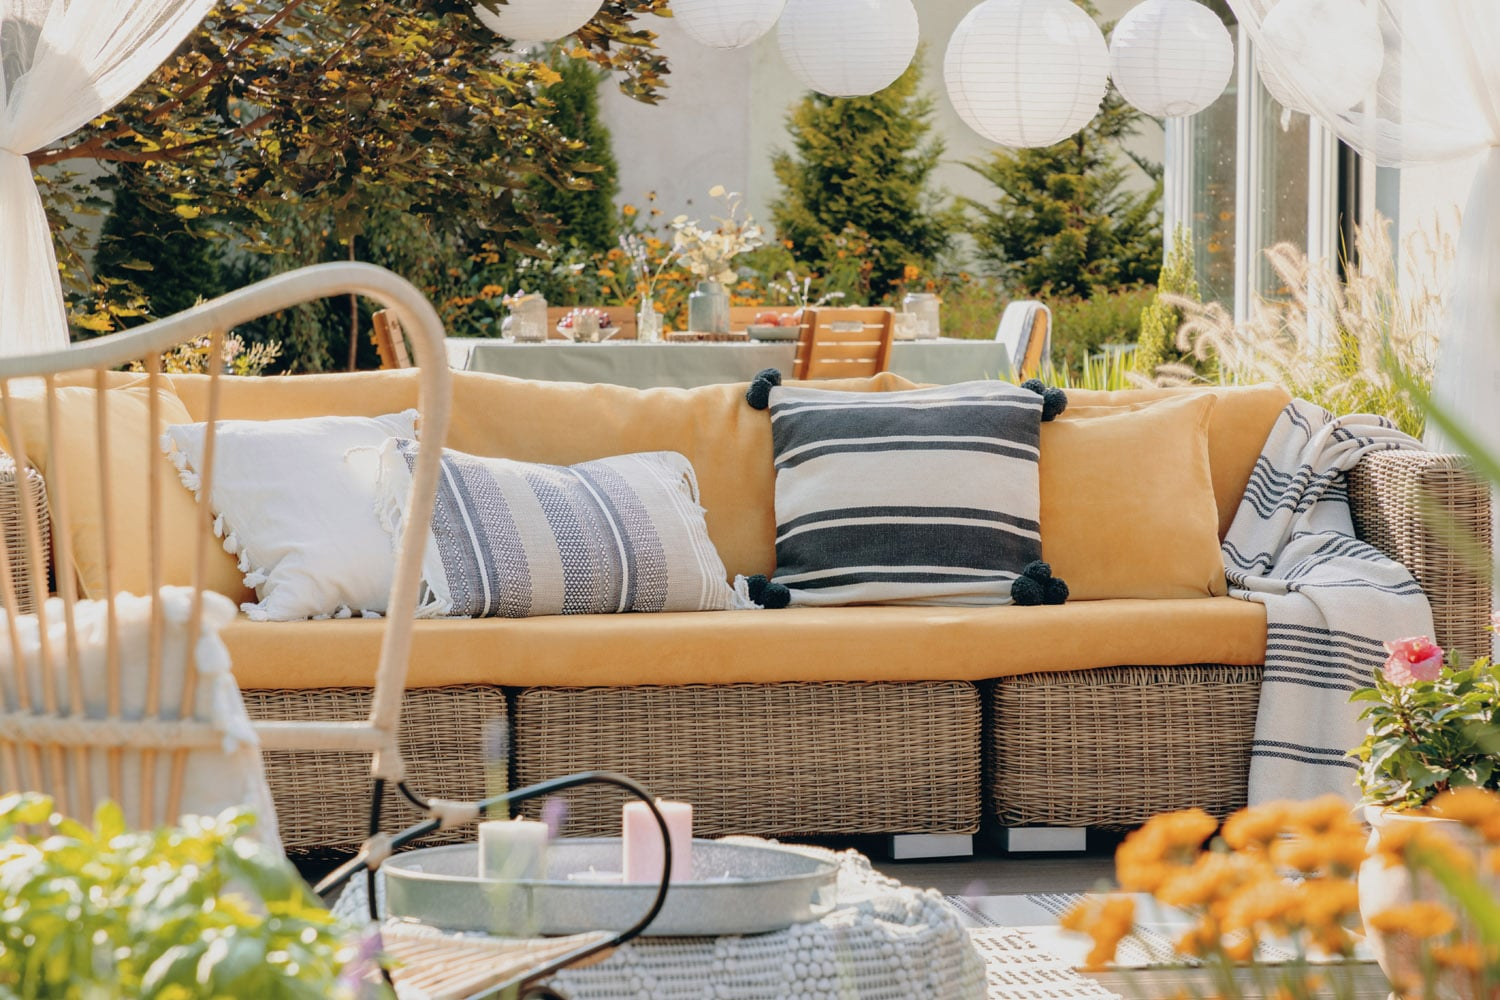 Outdoor Living Space Design outdoor living space design - living magazine